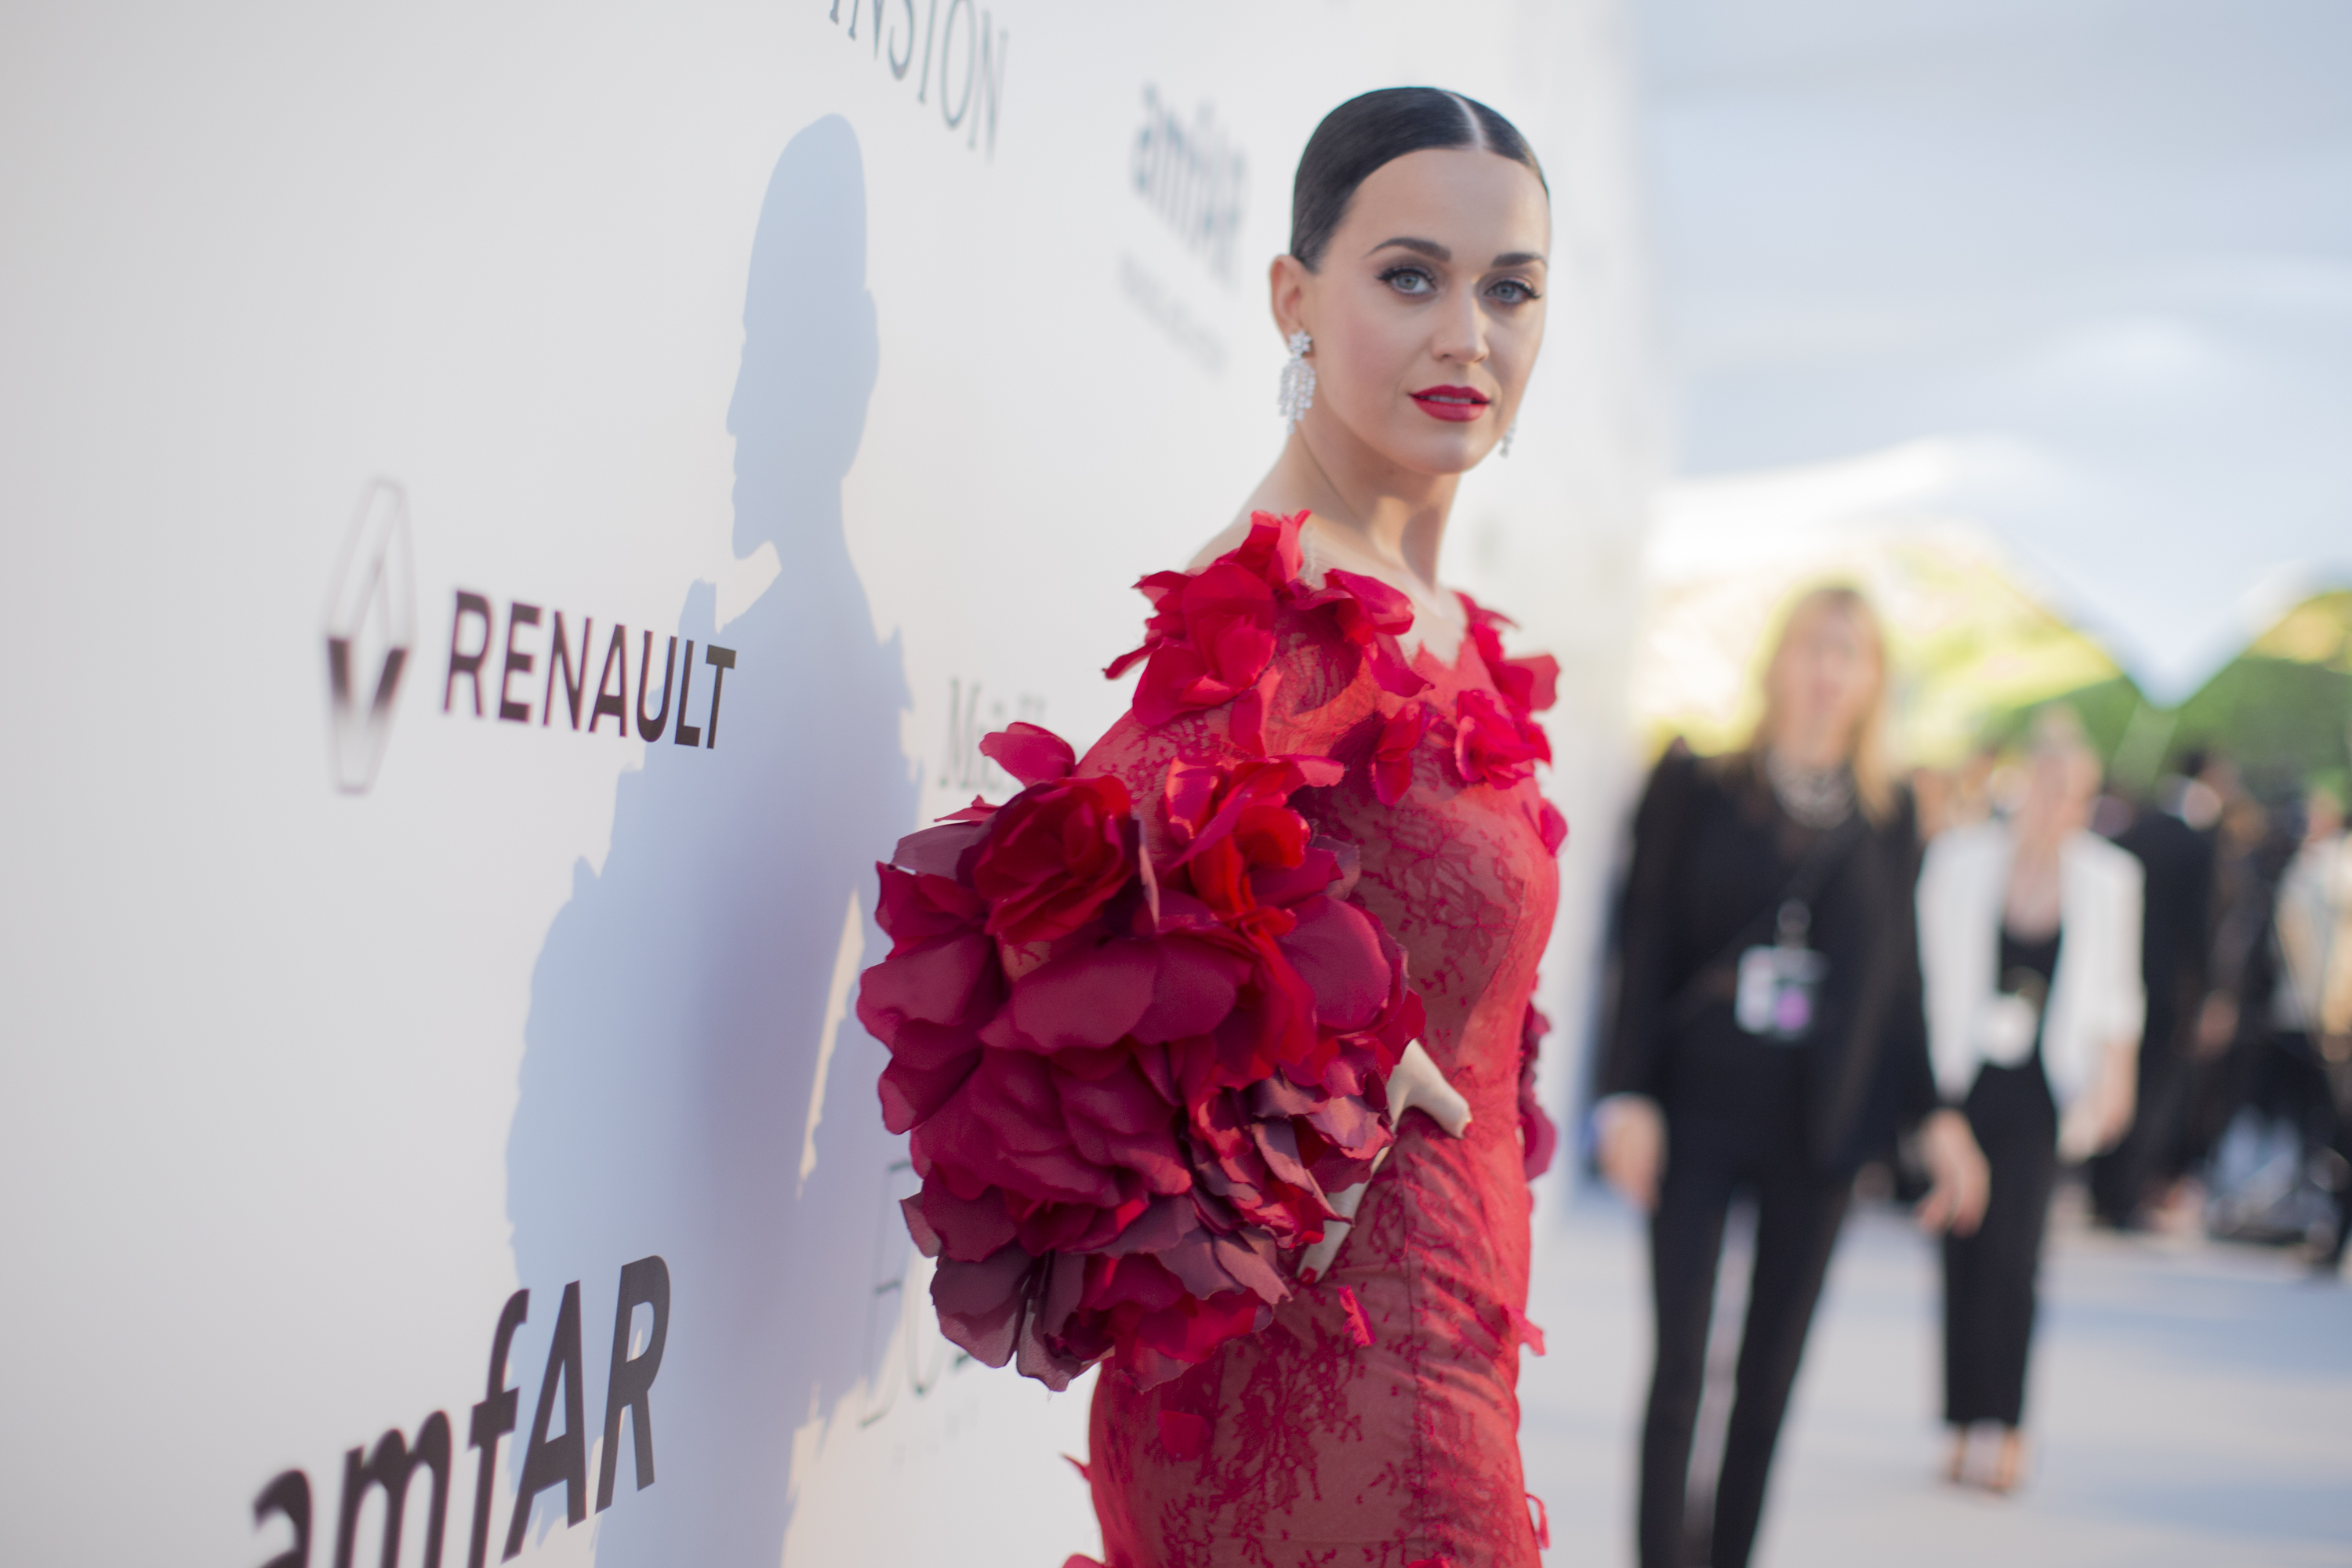 Katy Perry attends the amfAR's 23rd Cinema Against AIDS Gala at Hotel du Cap-Eden-Roc on May 19, 2016 in Cap d'Antibes, France.